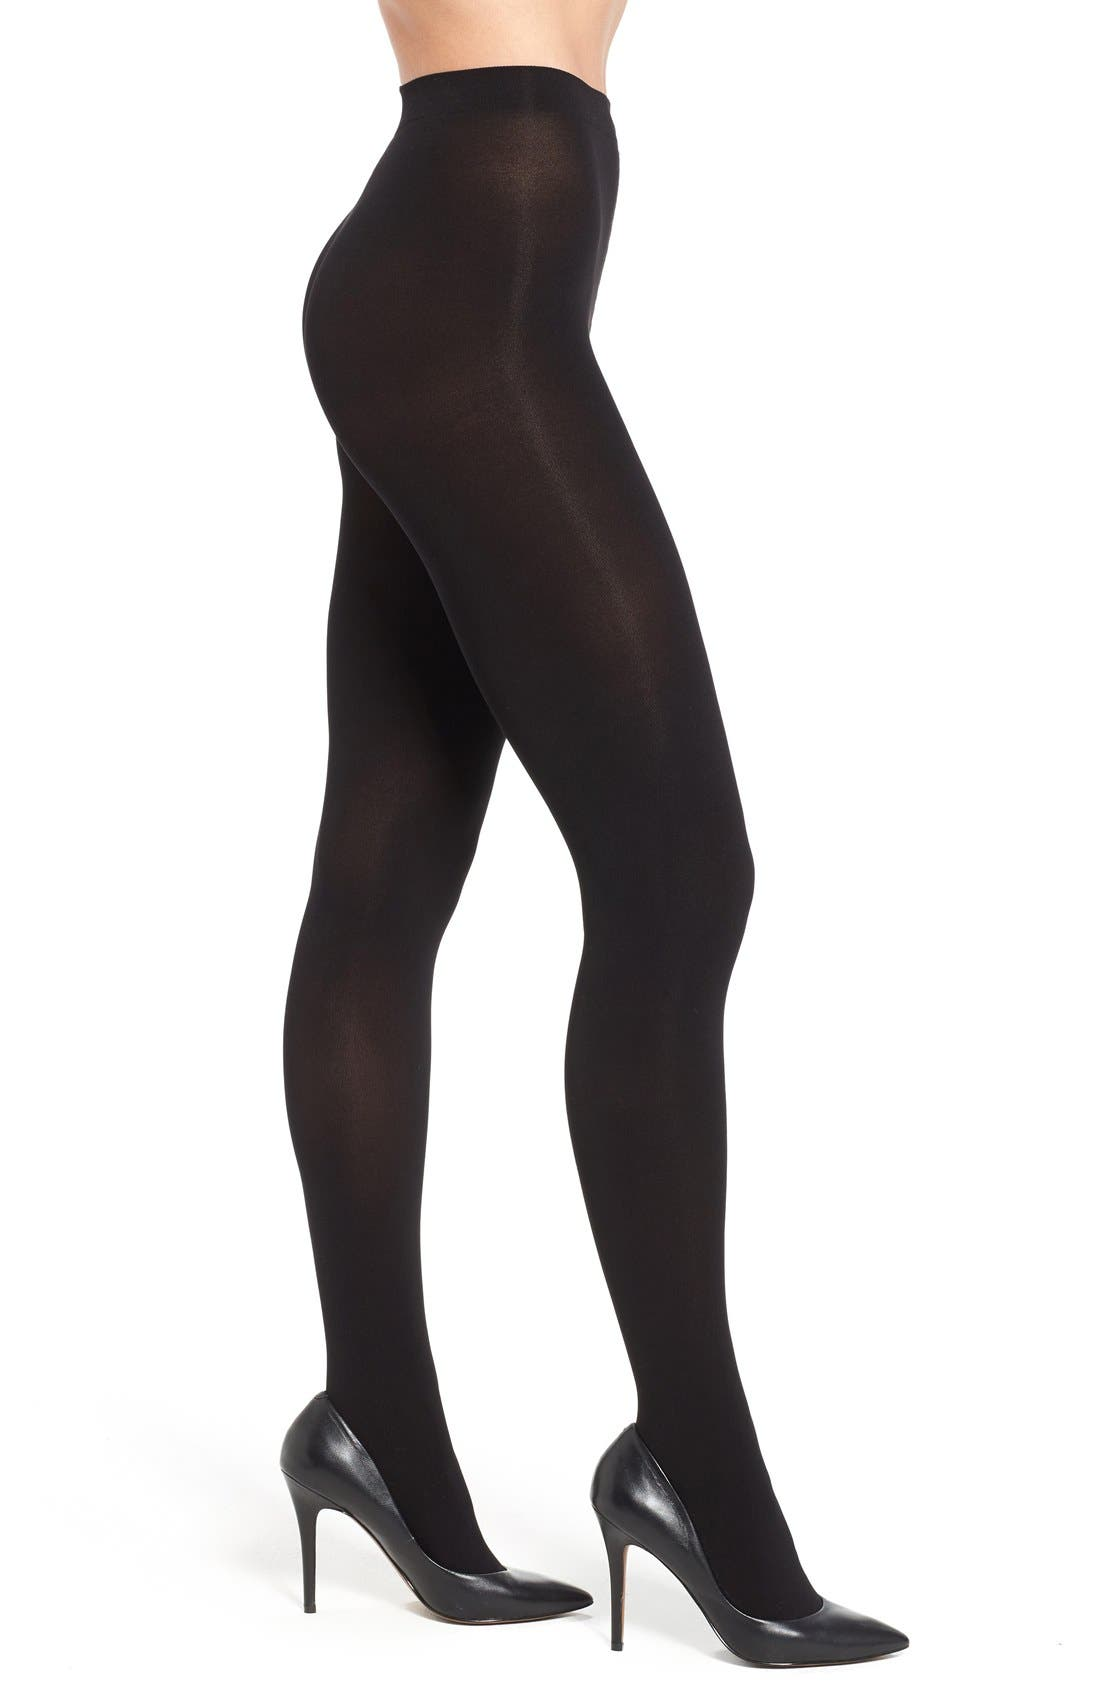 Main Image - Hue 'Parris' Opaque Tights